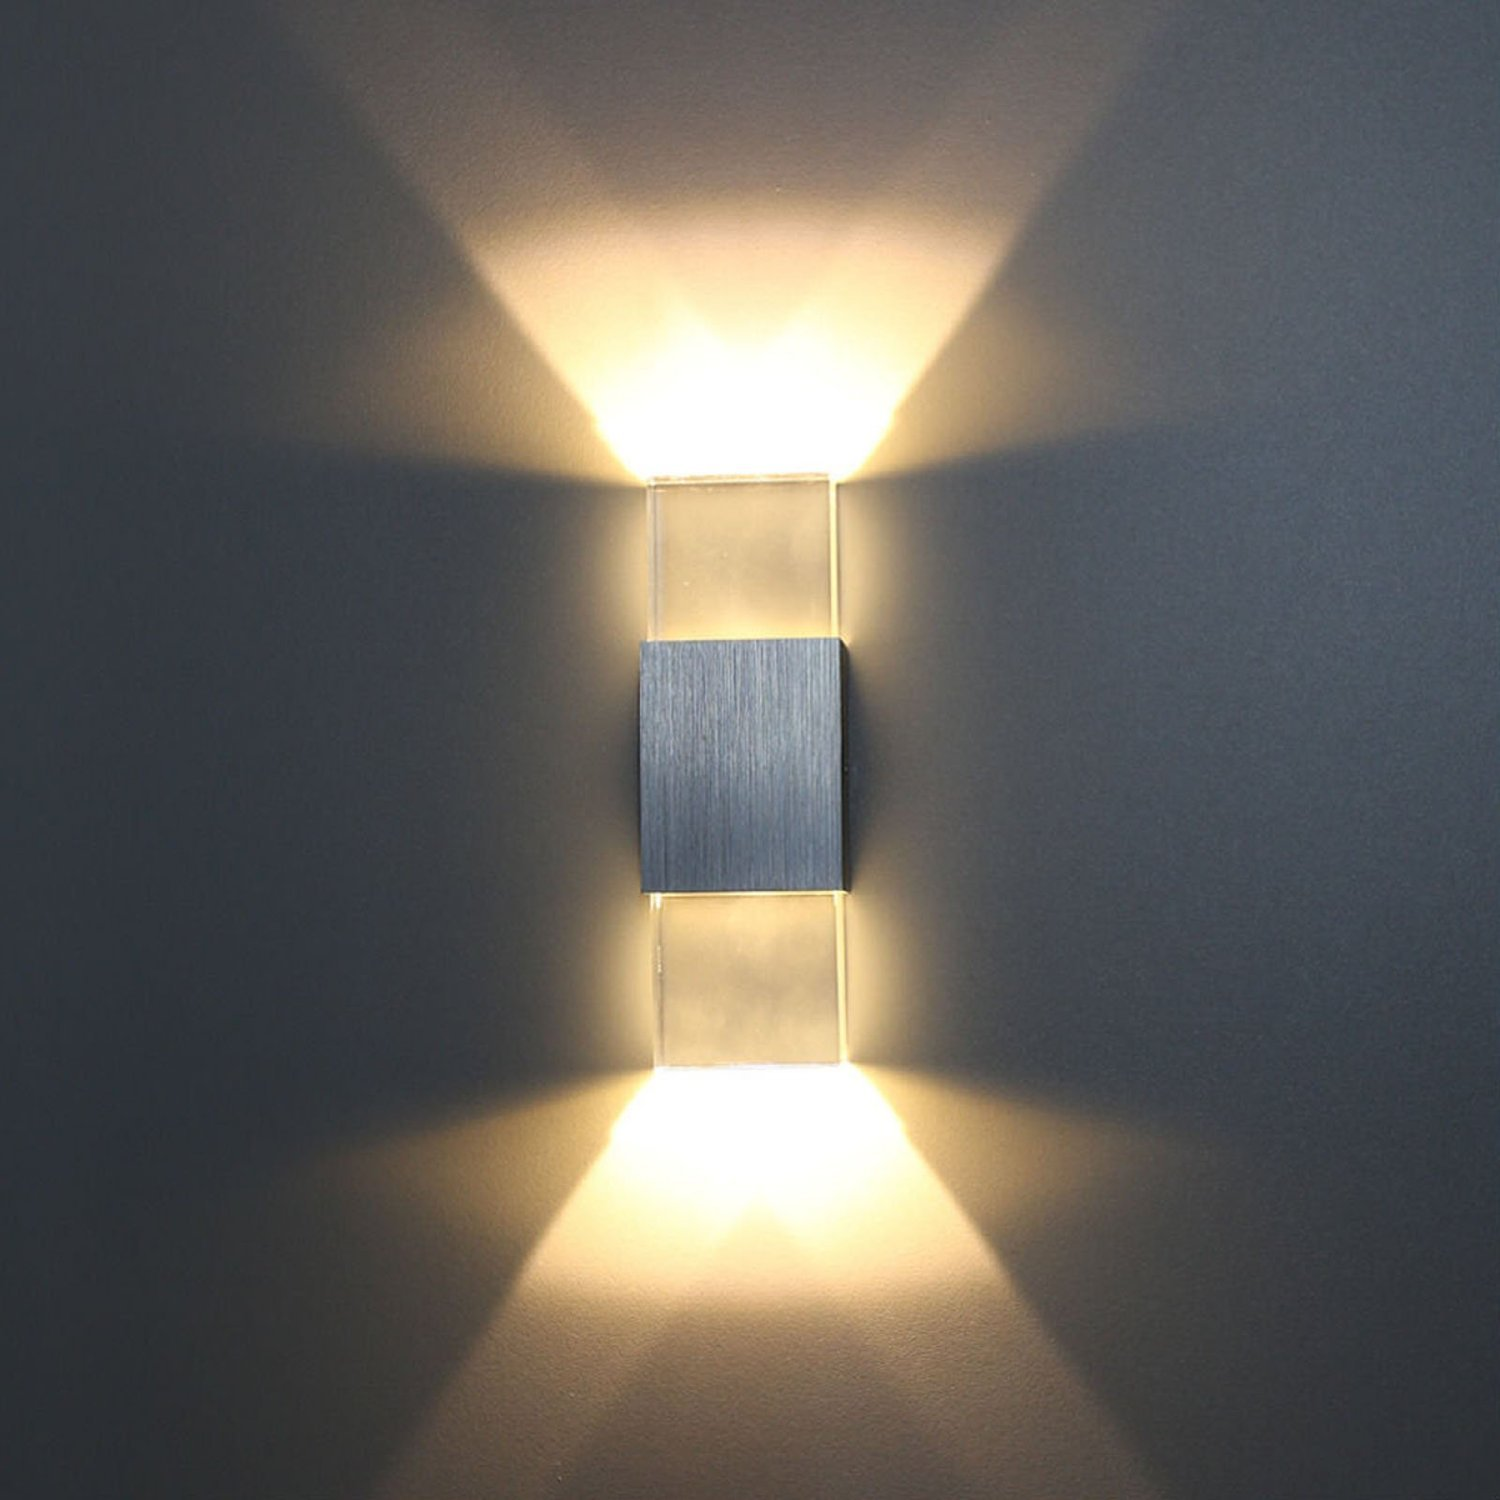 led wall sconce sunsbell wall lamp indoor up down ligting fixtures acrylic wall light amazoncom